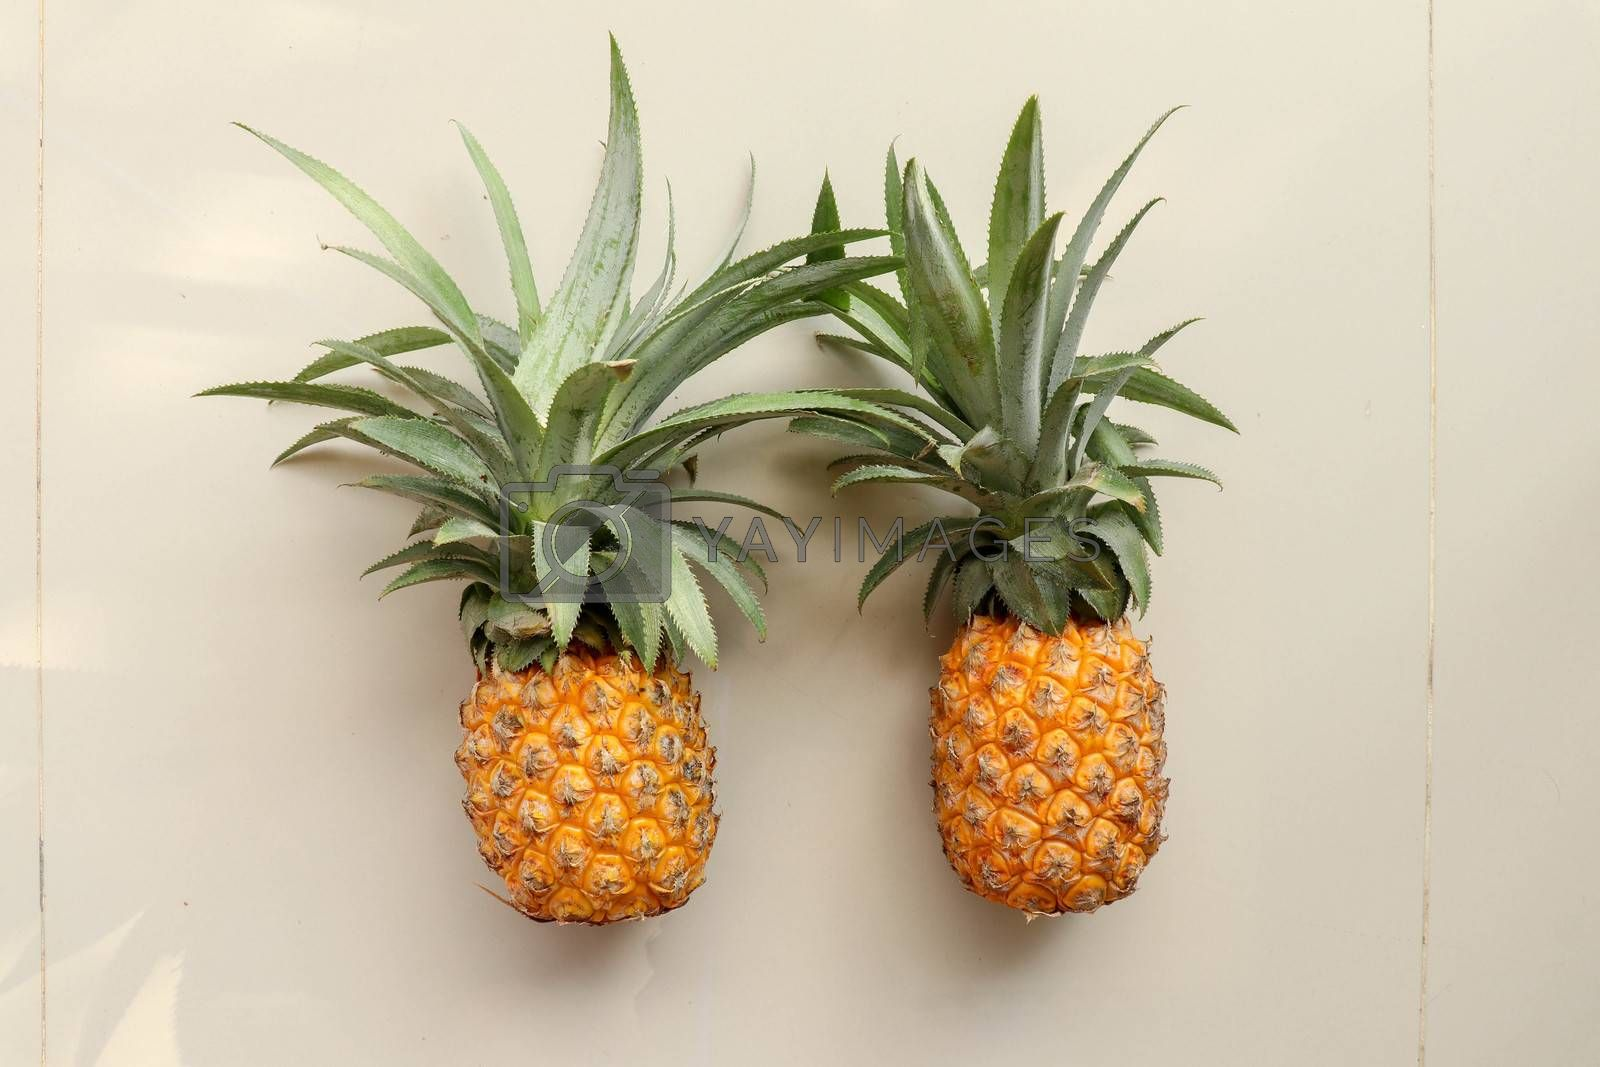 Couple whole pineapple tropical fruit or ananas isolated on white background. Whole ananas with leaves. Yellow orange ripe fresh pineapple. Two exotic tropical fruit. A full pineapple.